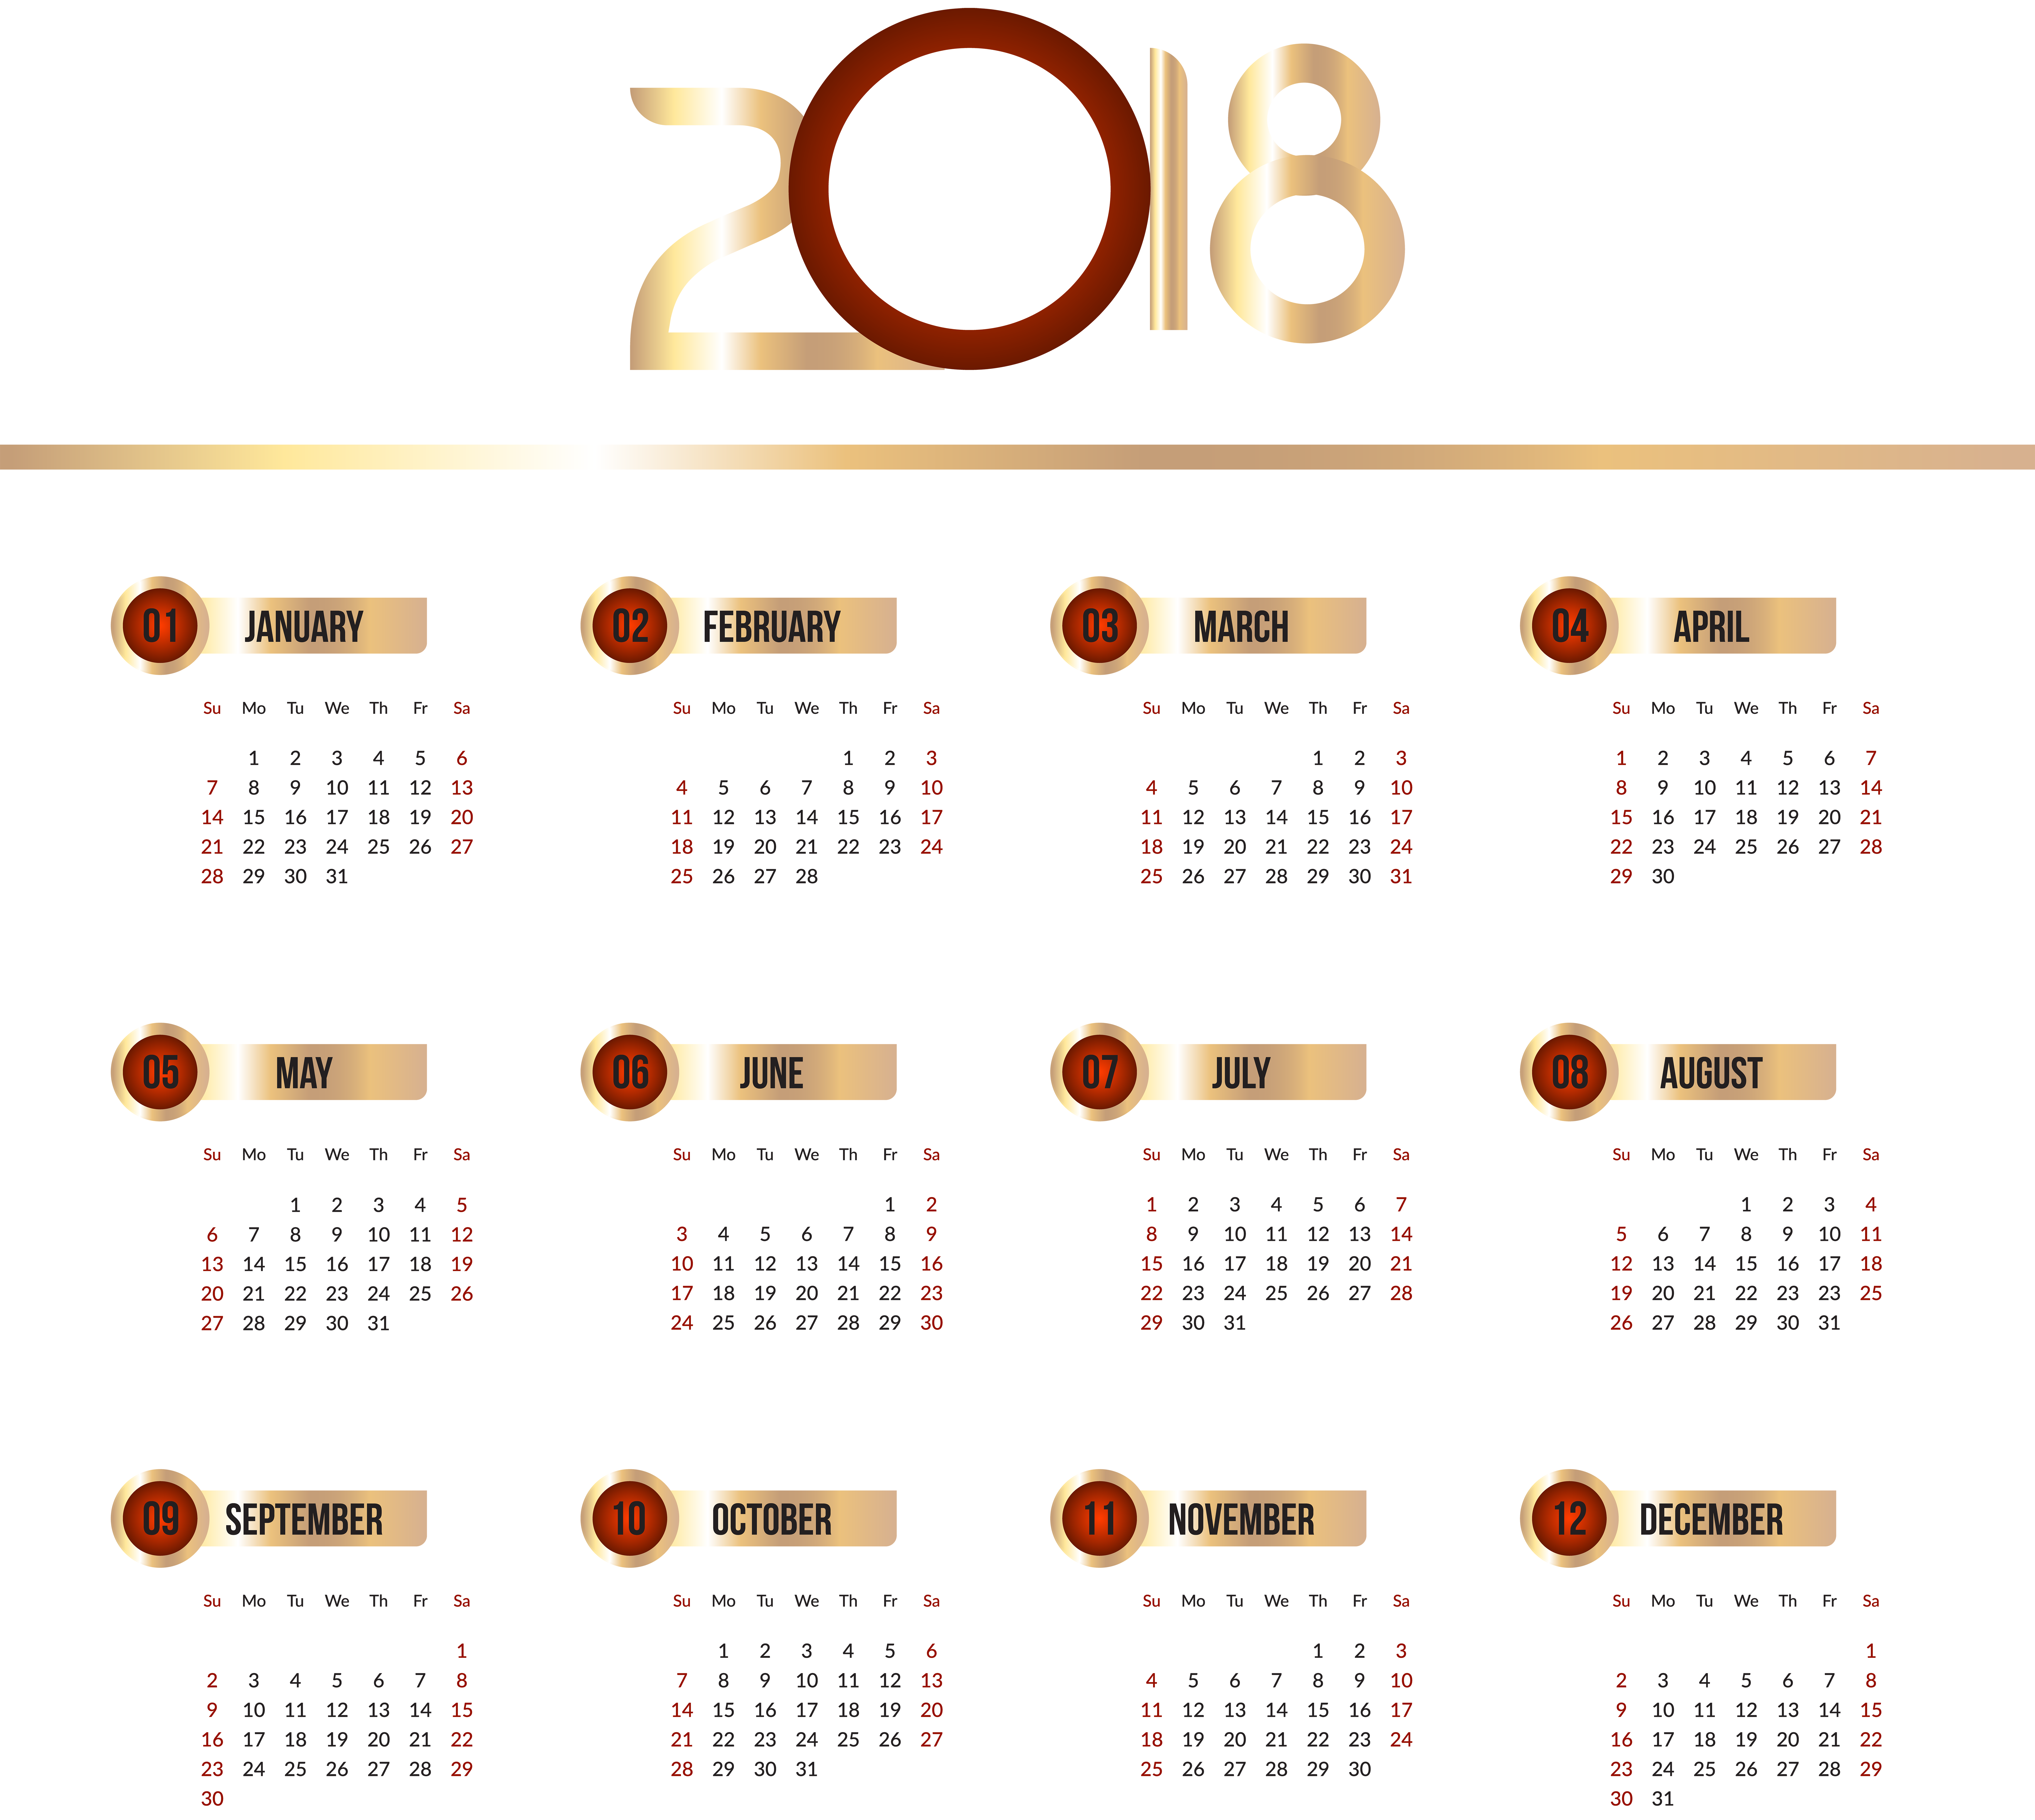 2018 calendar transparent clip art png image gallery yopriceville high quality images and. Black Bedroom Furniture Sets. Home Design Ideas